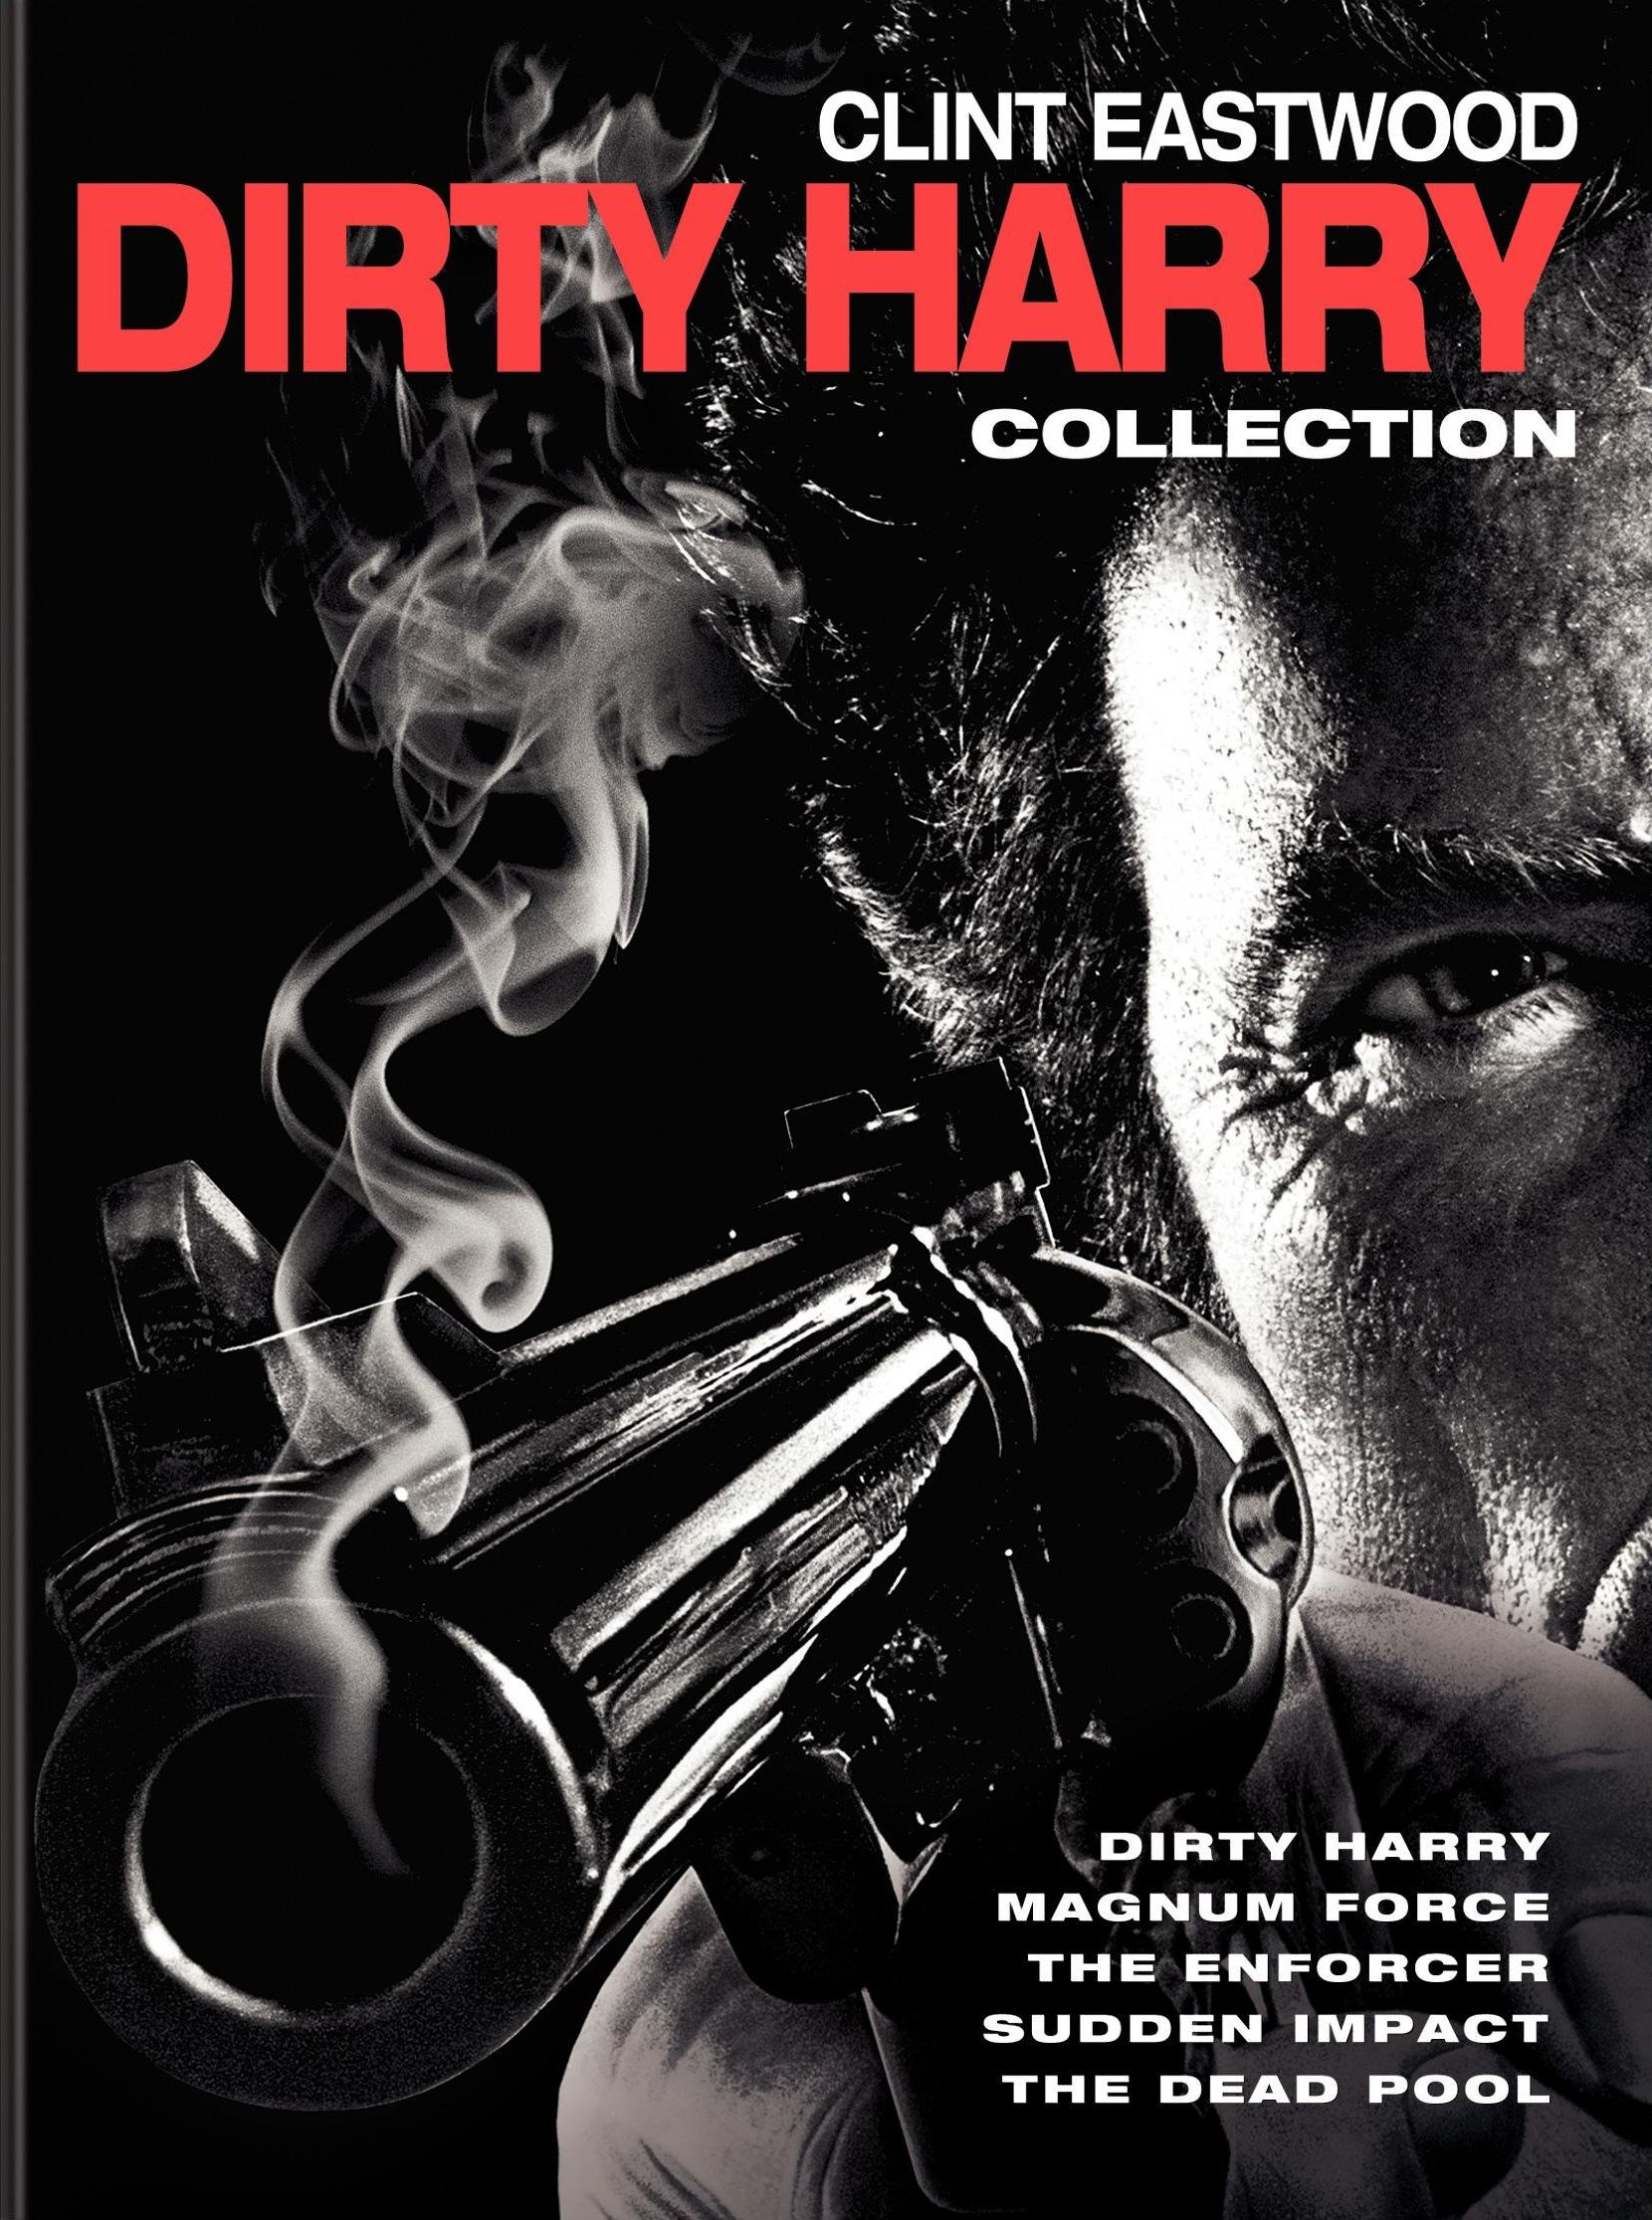 ������� �����: ��������� - Dirty Harry. Collection